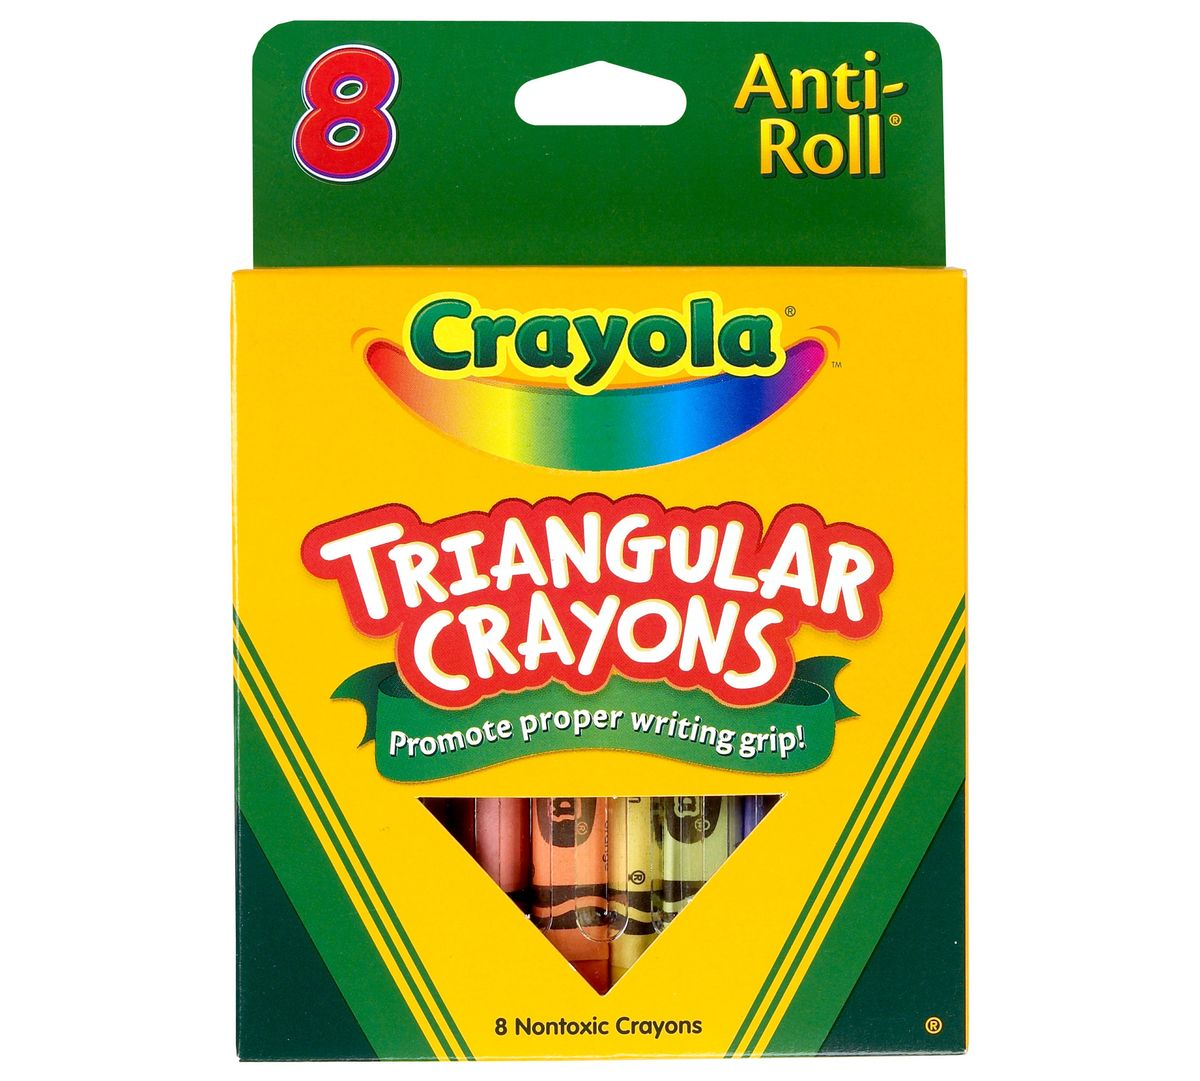 8 Count Anti-Roll Triangular Crayons